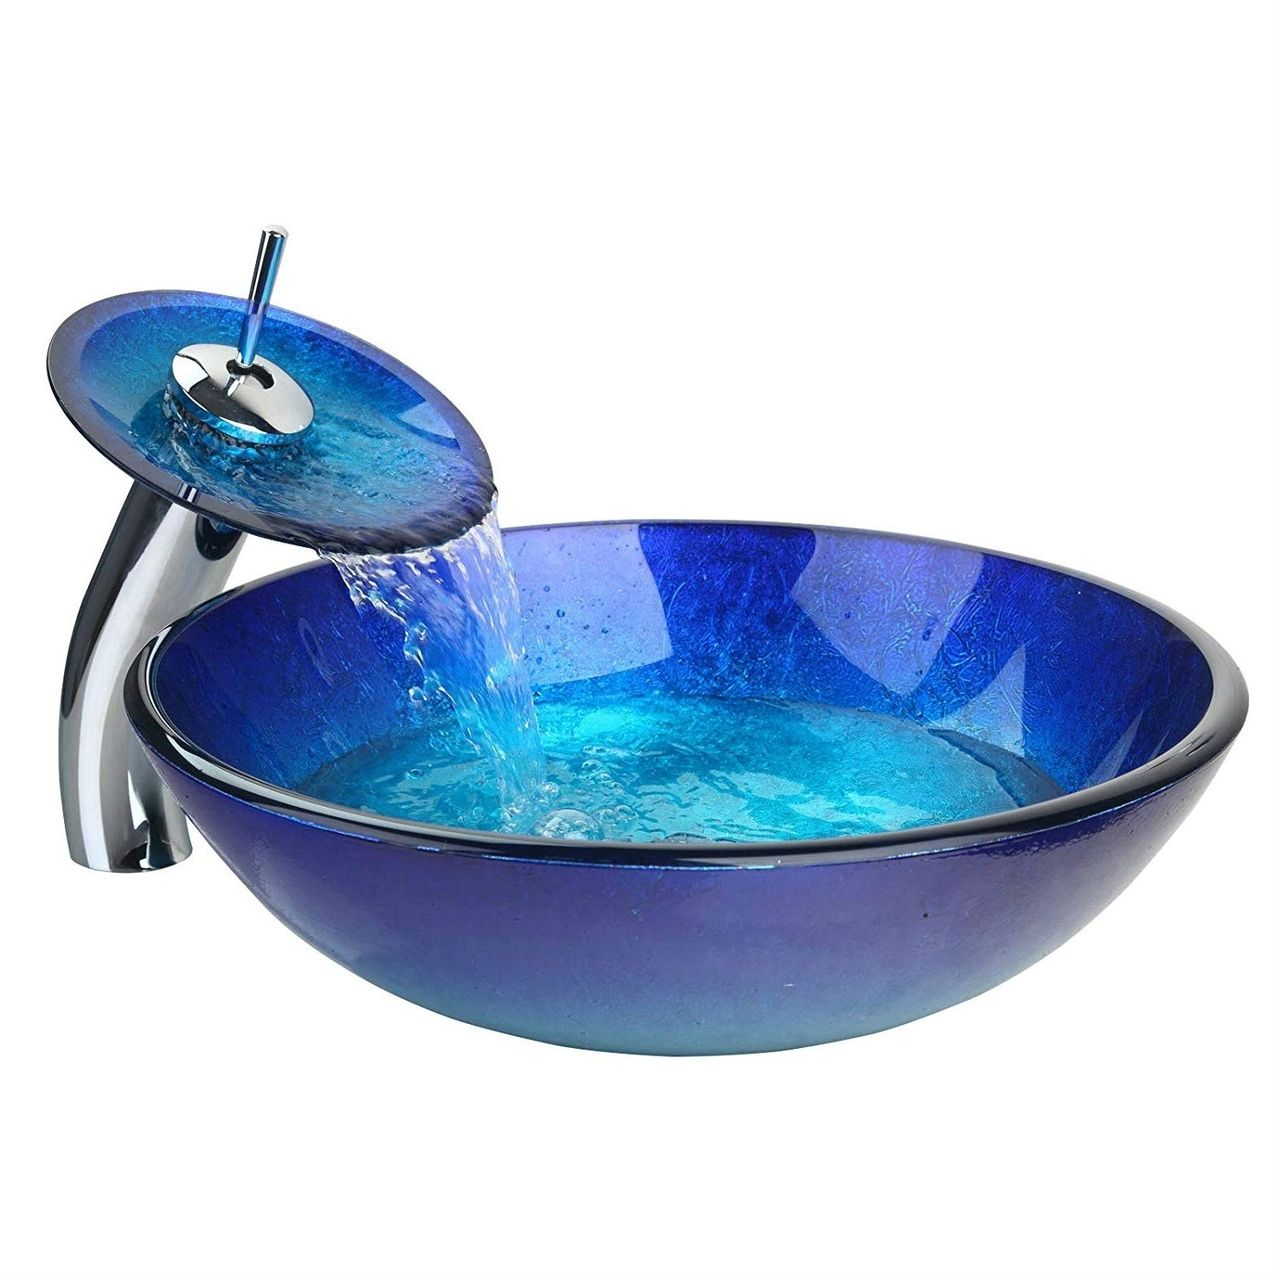 Modern Blue Glass Bathroom Vessel Sink And Faucet With Chrome